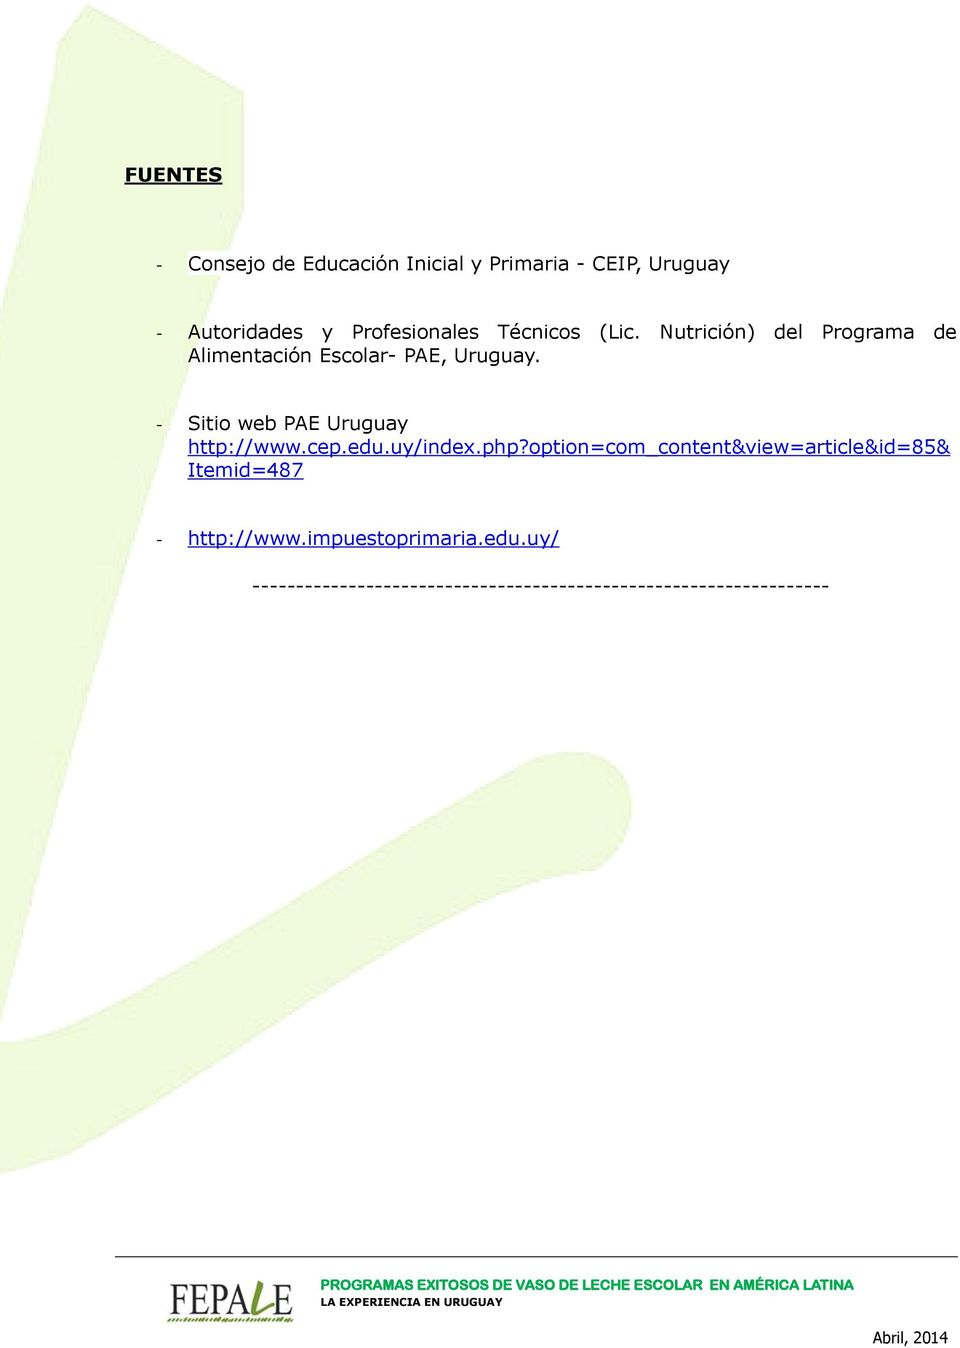 edu.uy/index.php?option=com_content&view=article&id=85& Itemid=487 - http://www.impuestoprimaria.edu.uy/